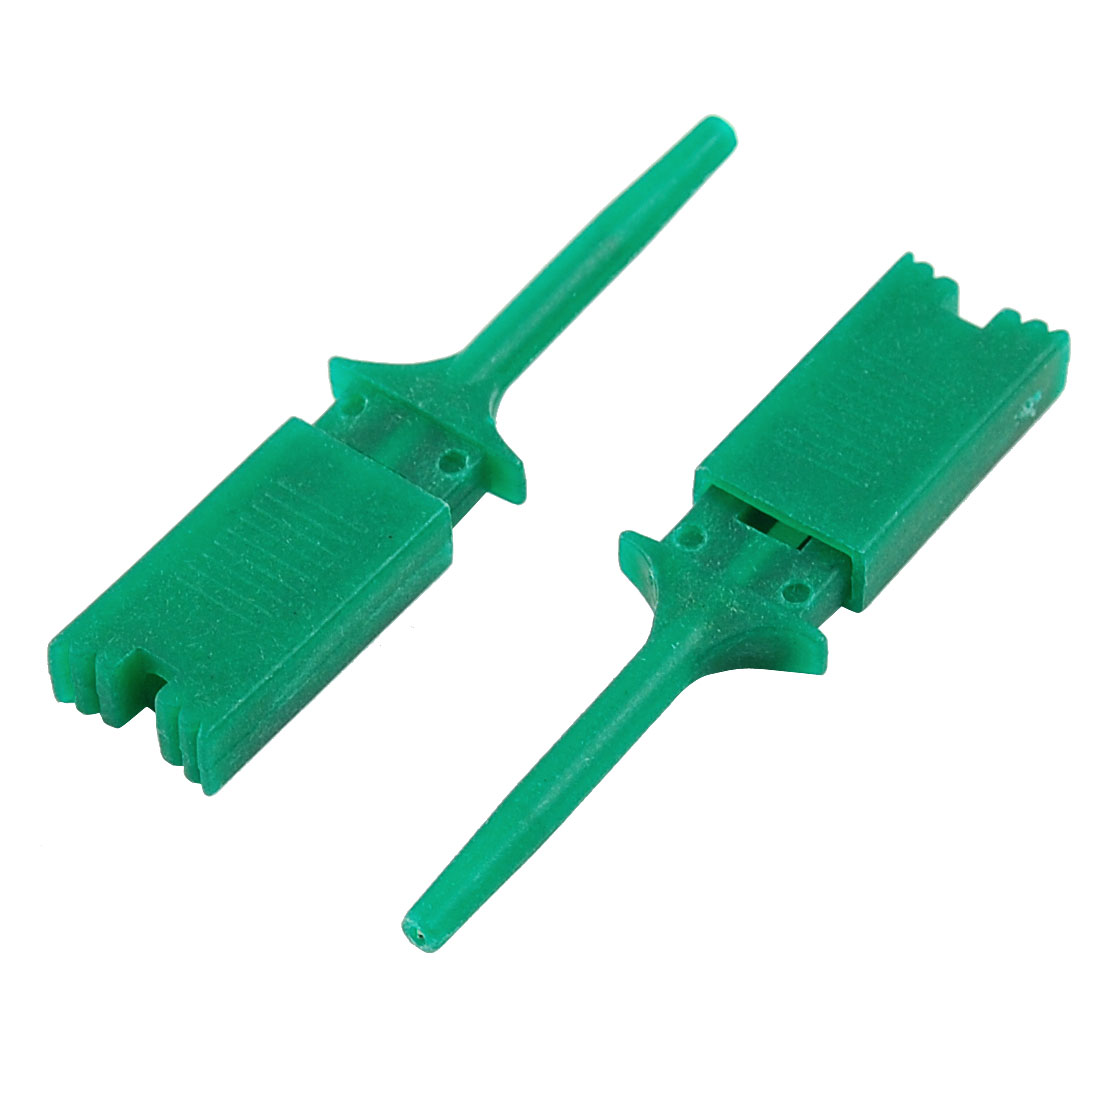 """10 Pcs Green Plastic Multimeter Test Probe Cable SMD IC Hook Clip Grabbers 1.9"""""""